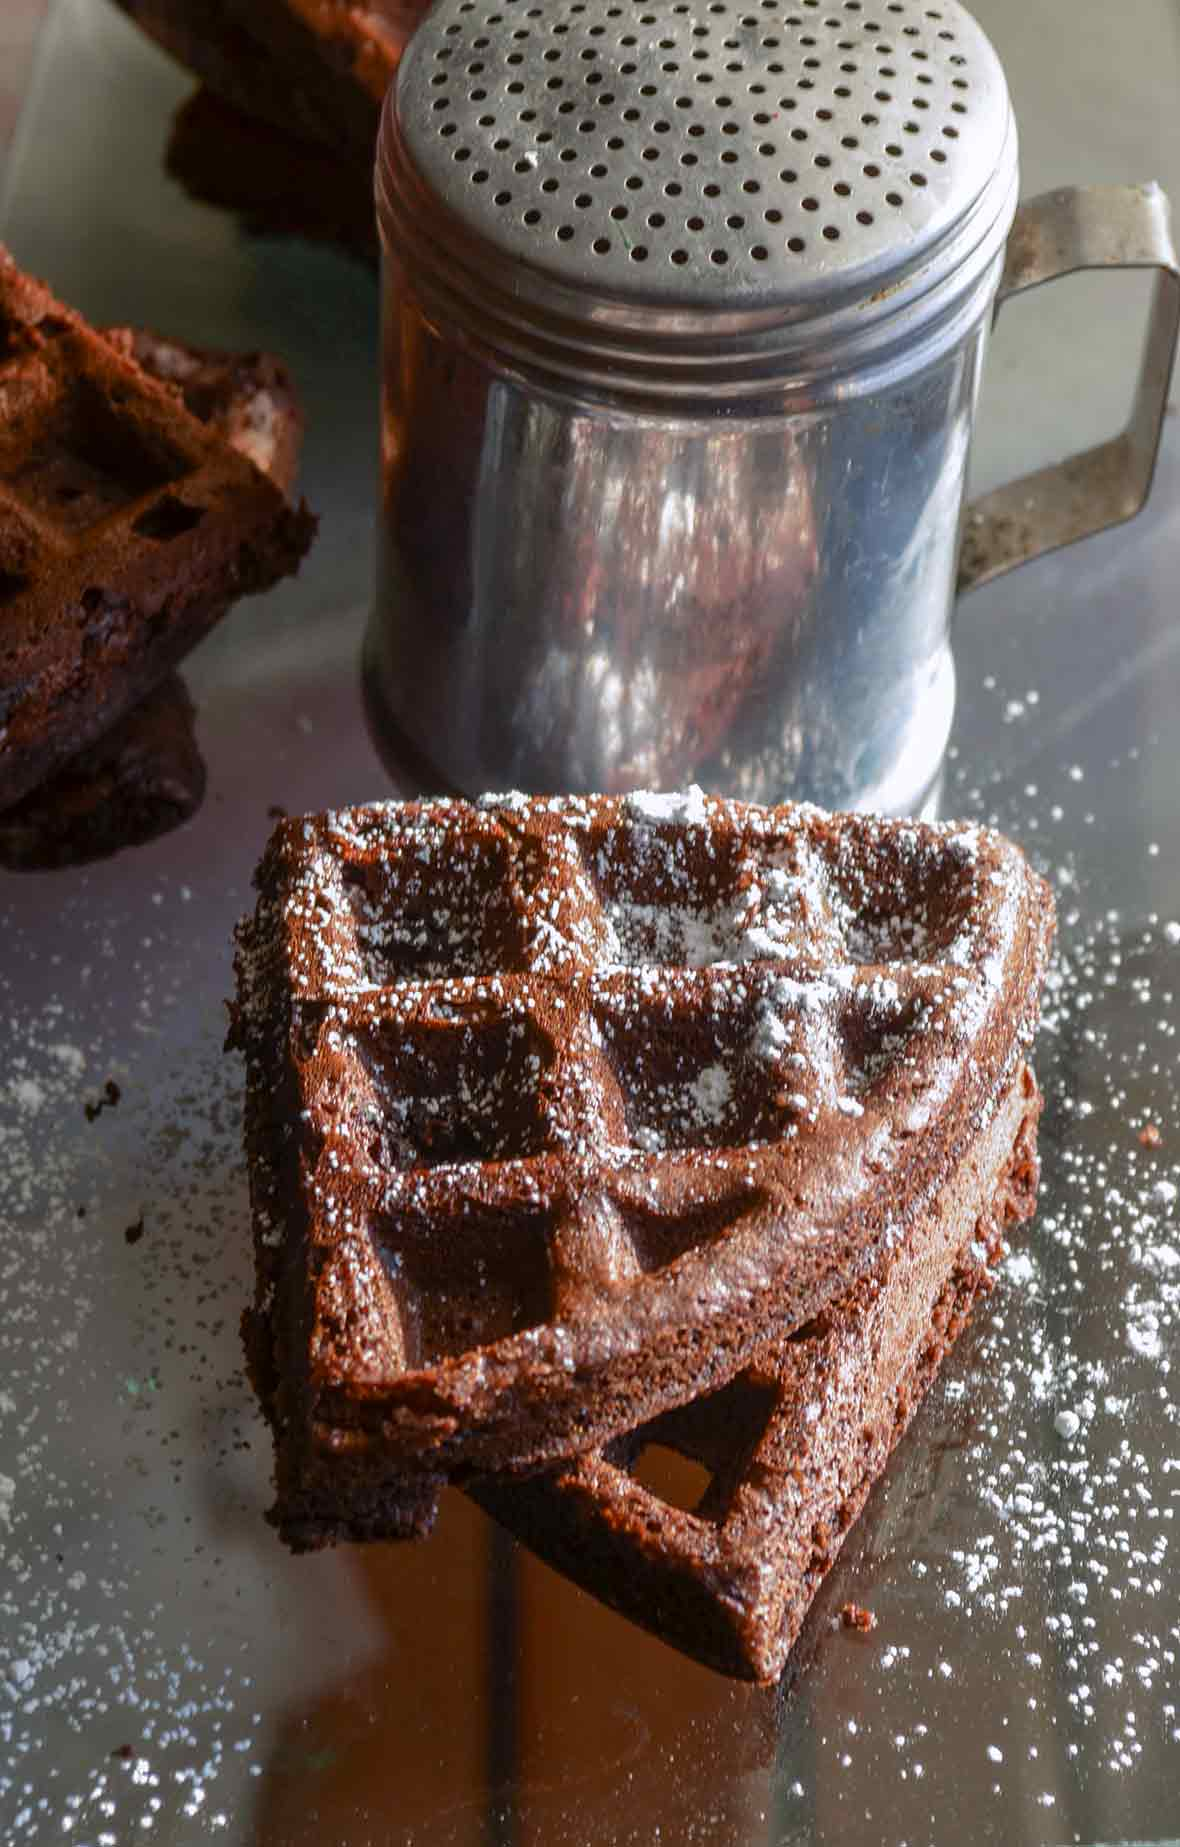 Two dark chocolate waffles on a mirrored surface sprinkled with powered sugar